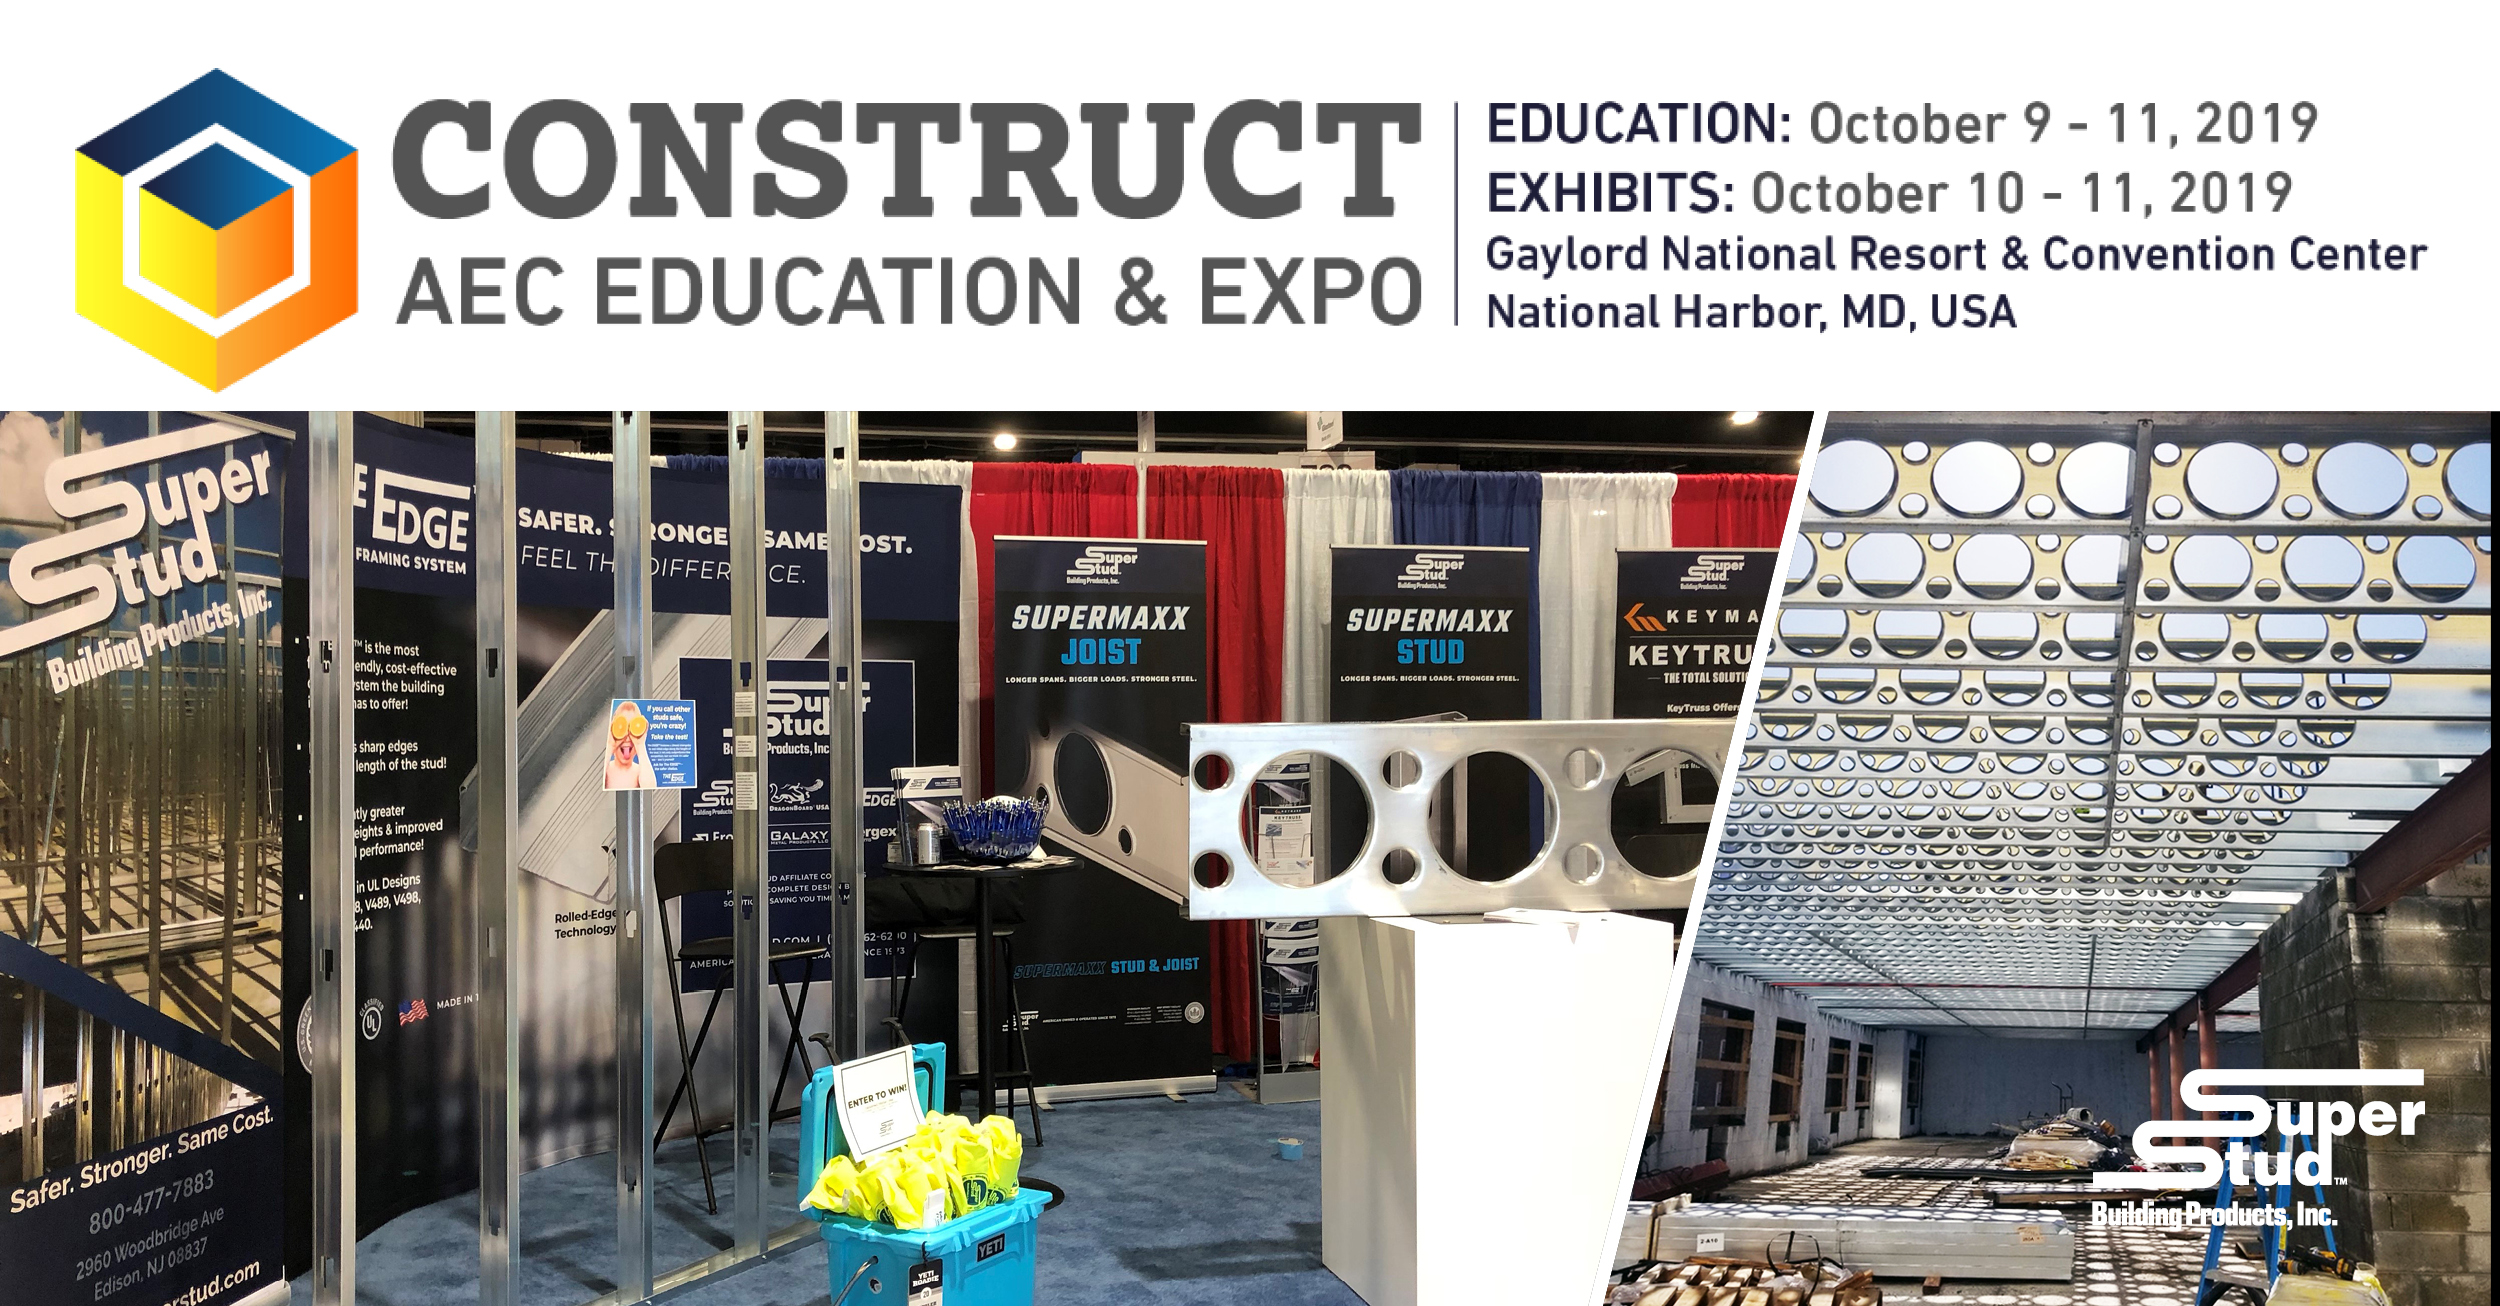 Super Stud to Exhibit at Construct